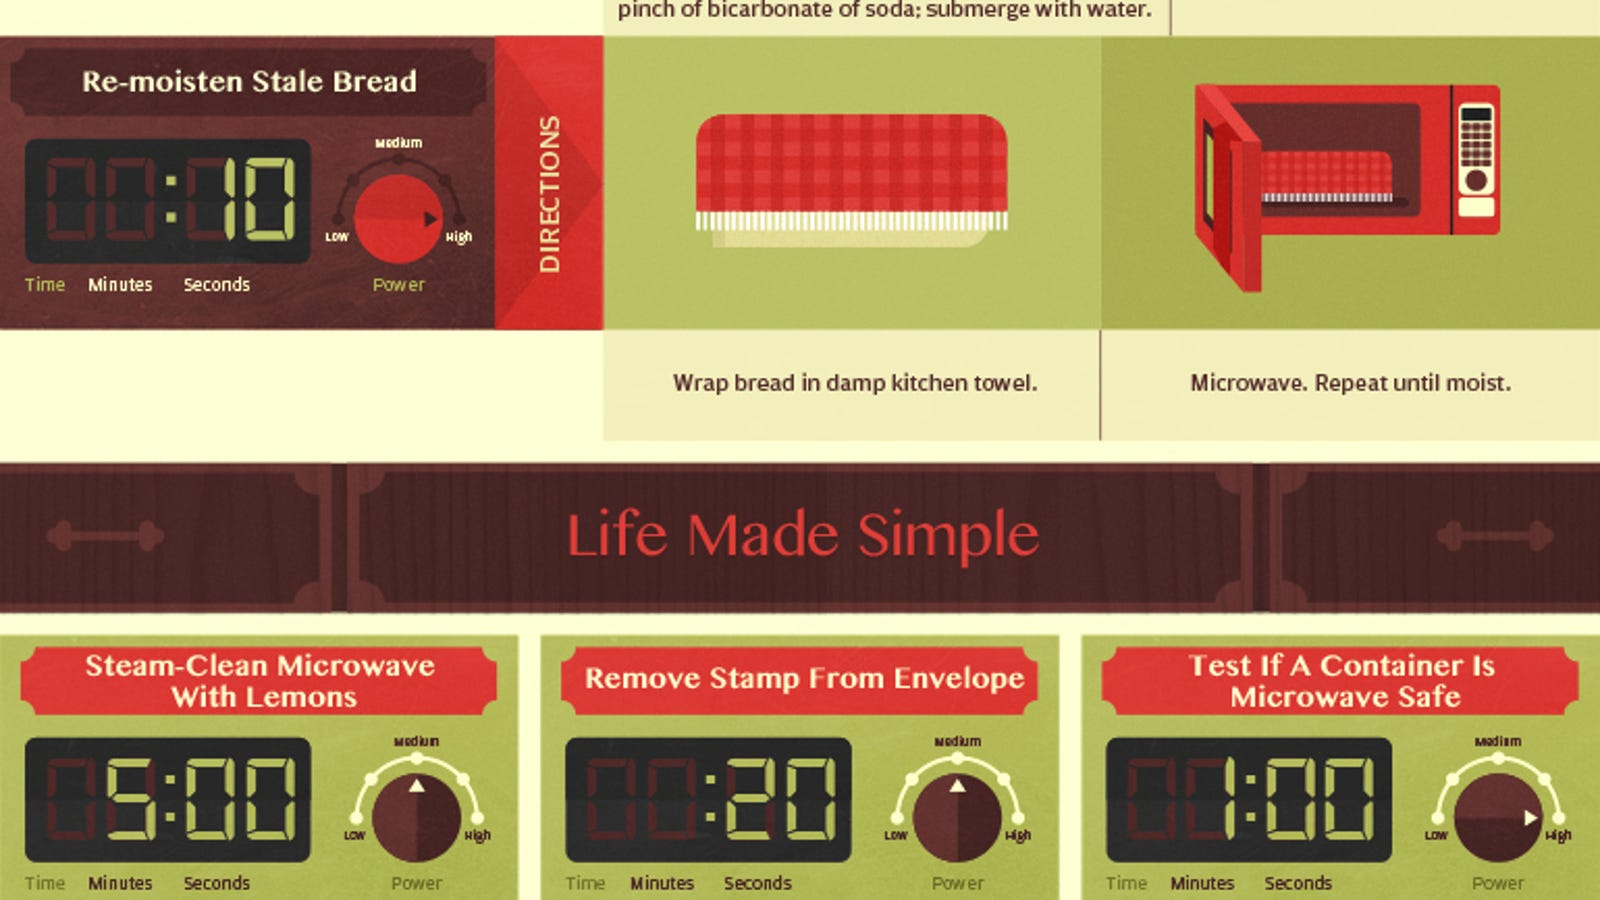 This Infographic is a Cheat Sheet For Clever Microwave Uses